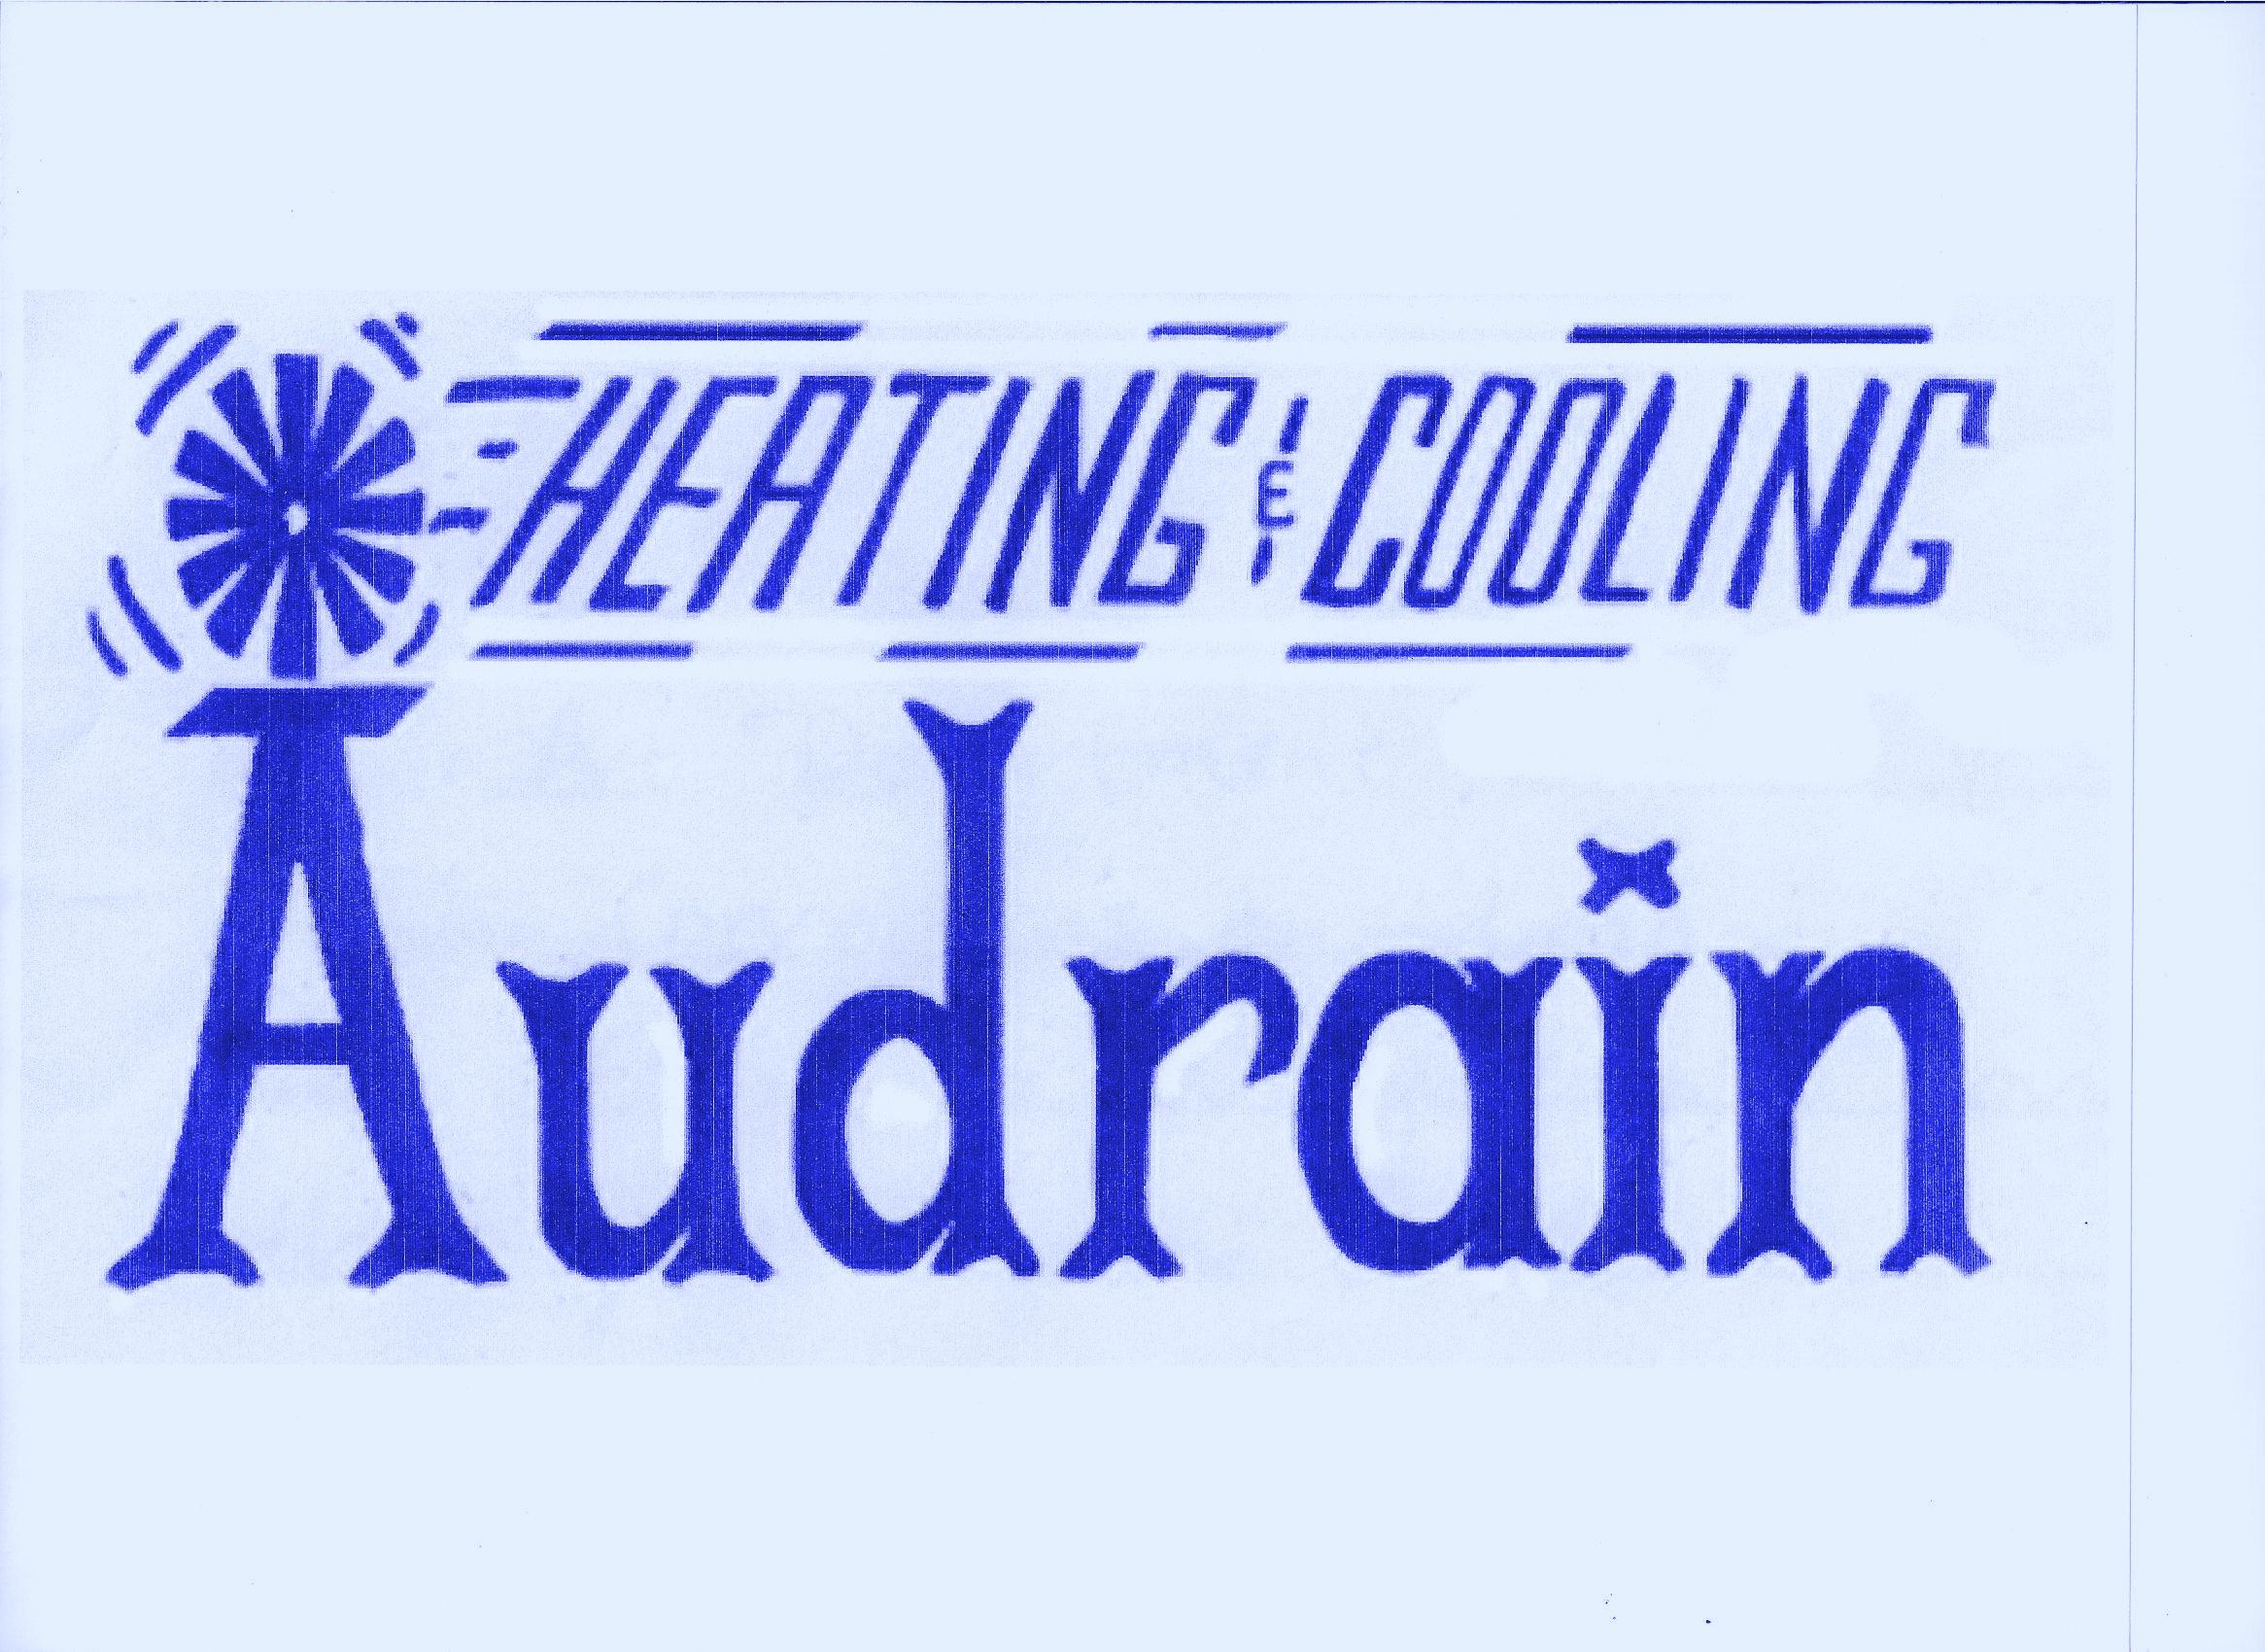 Audrain Heating and Cooling